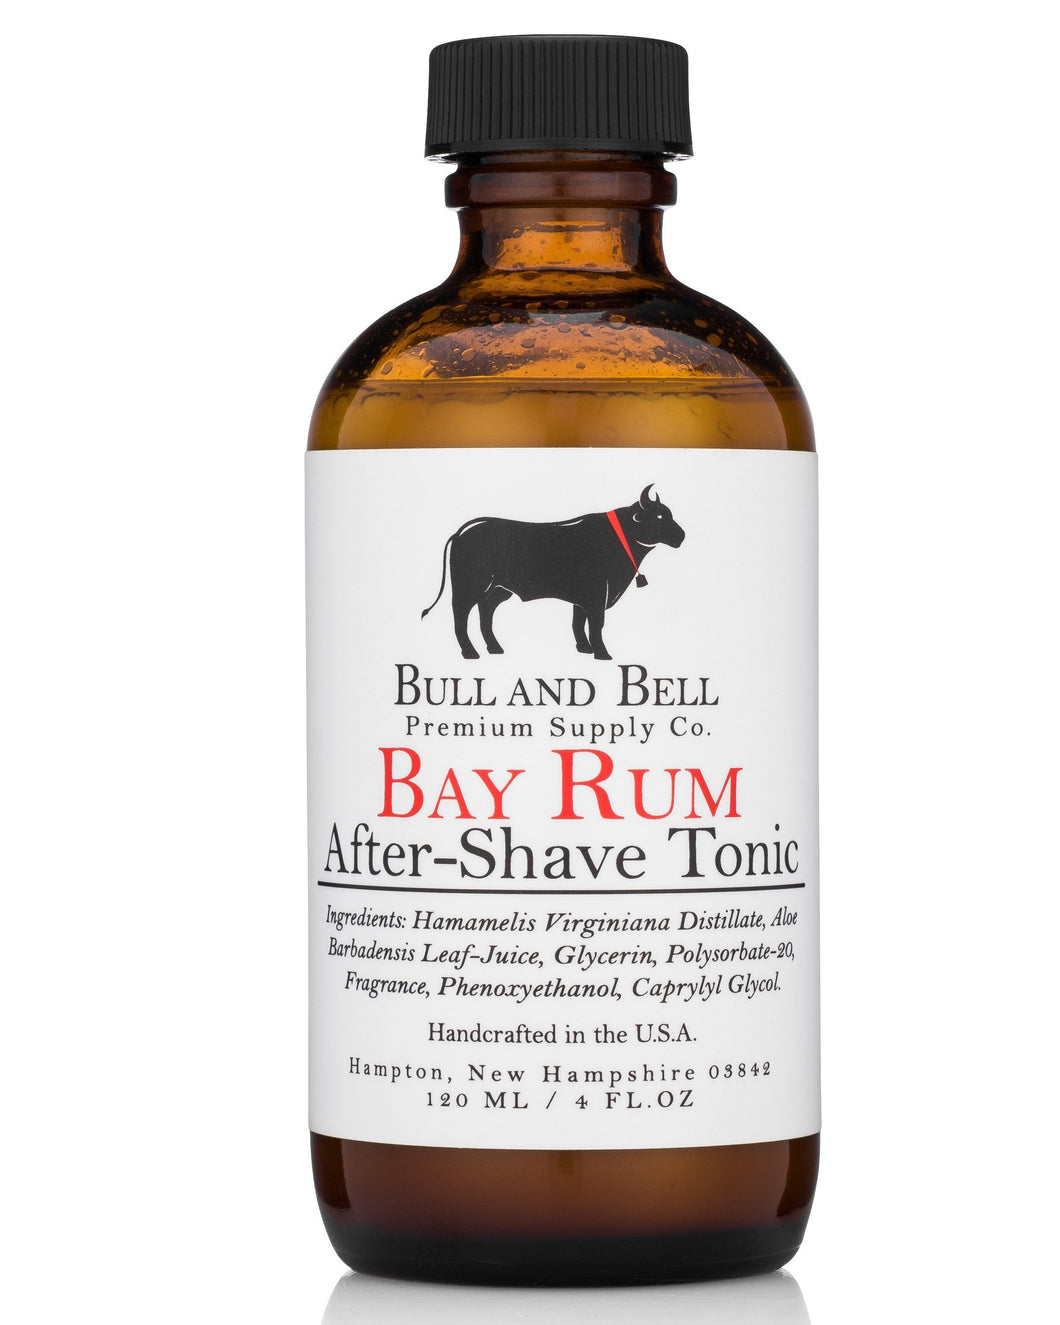 Bay Rum After-Shave Tonic